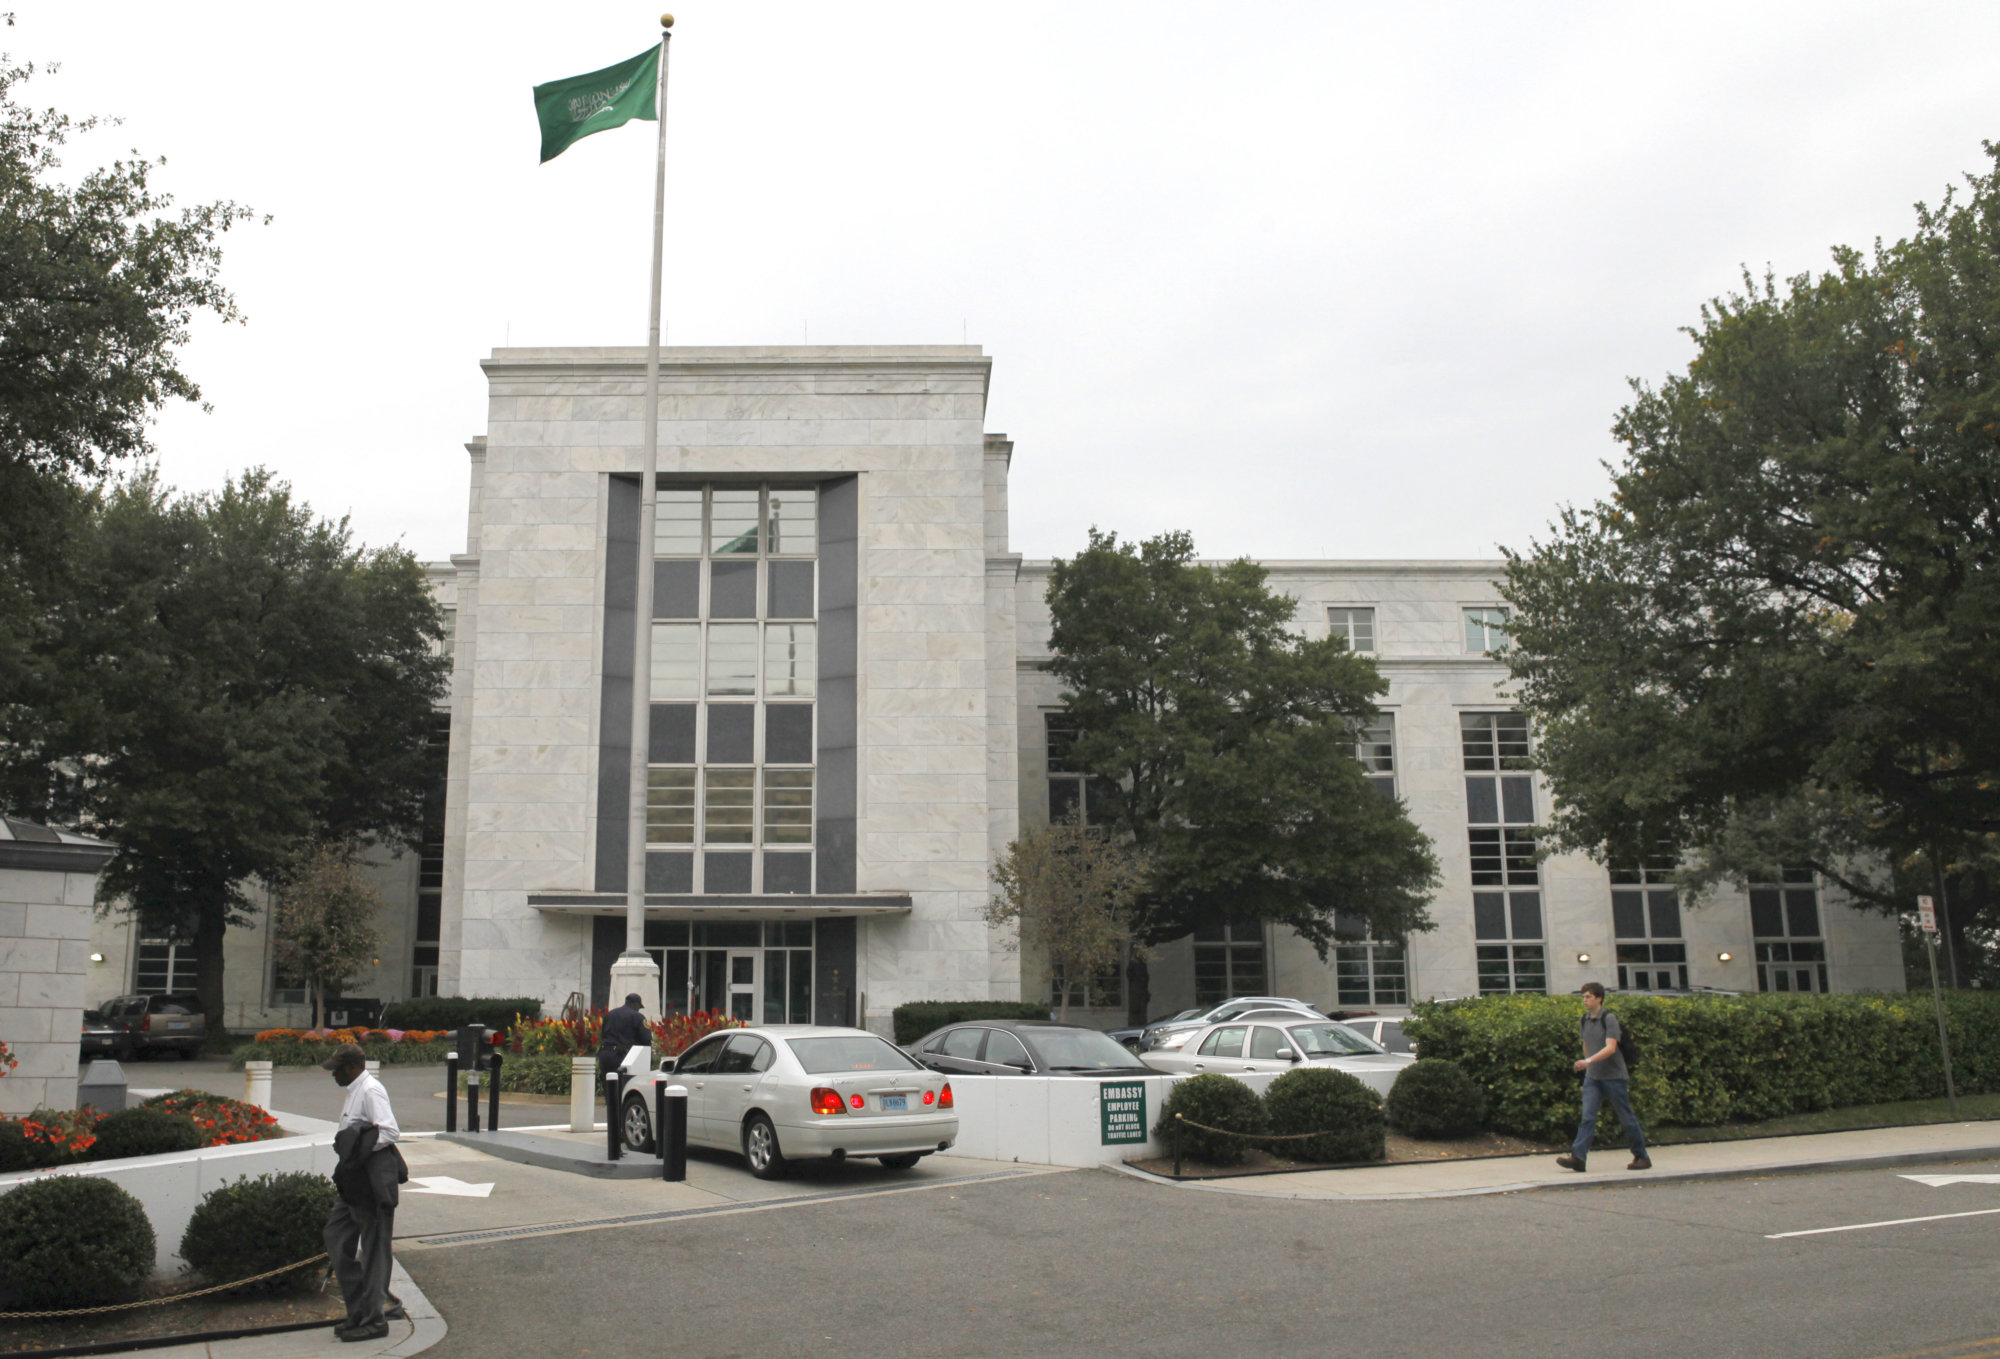 Khashoggi Way? Street in front of Saudi embassy in DC could be renamed